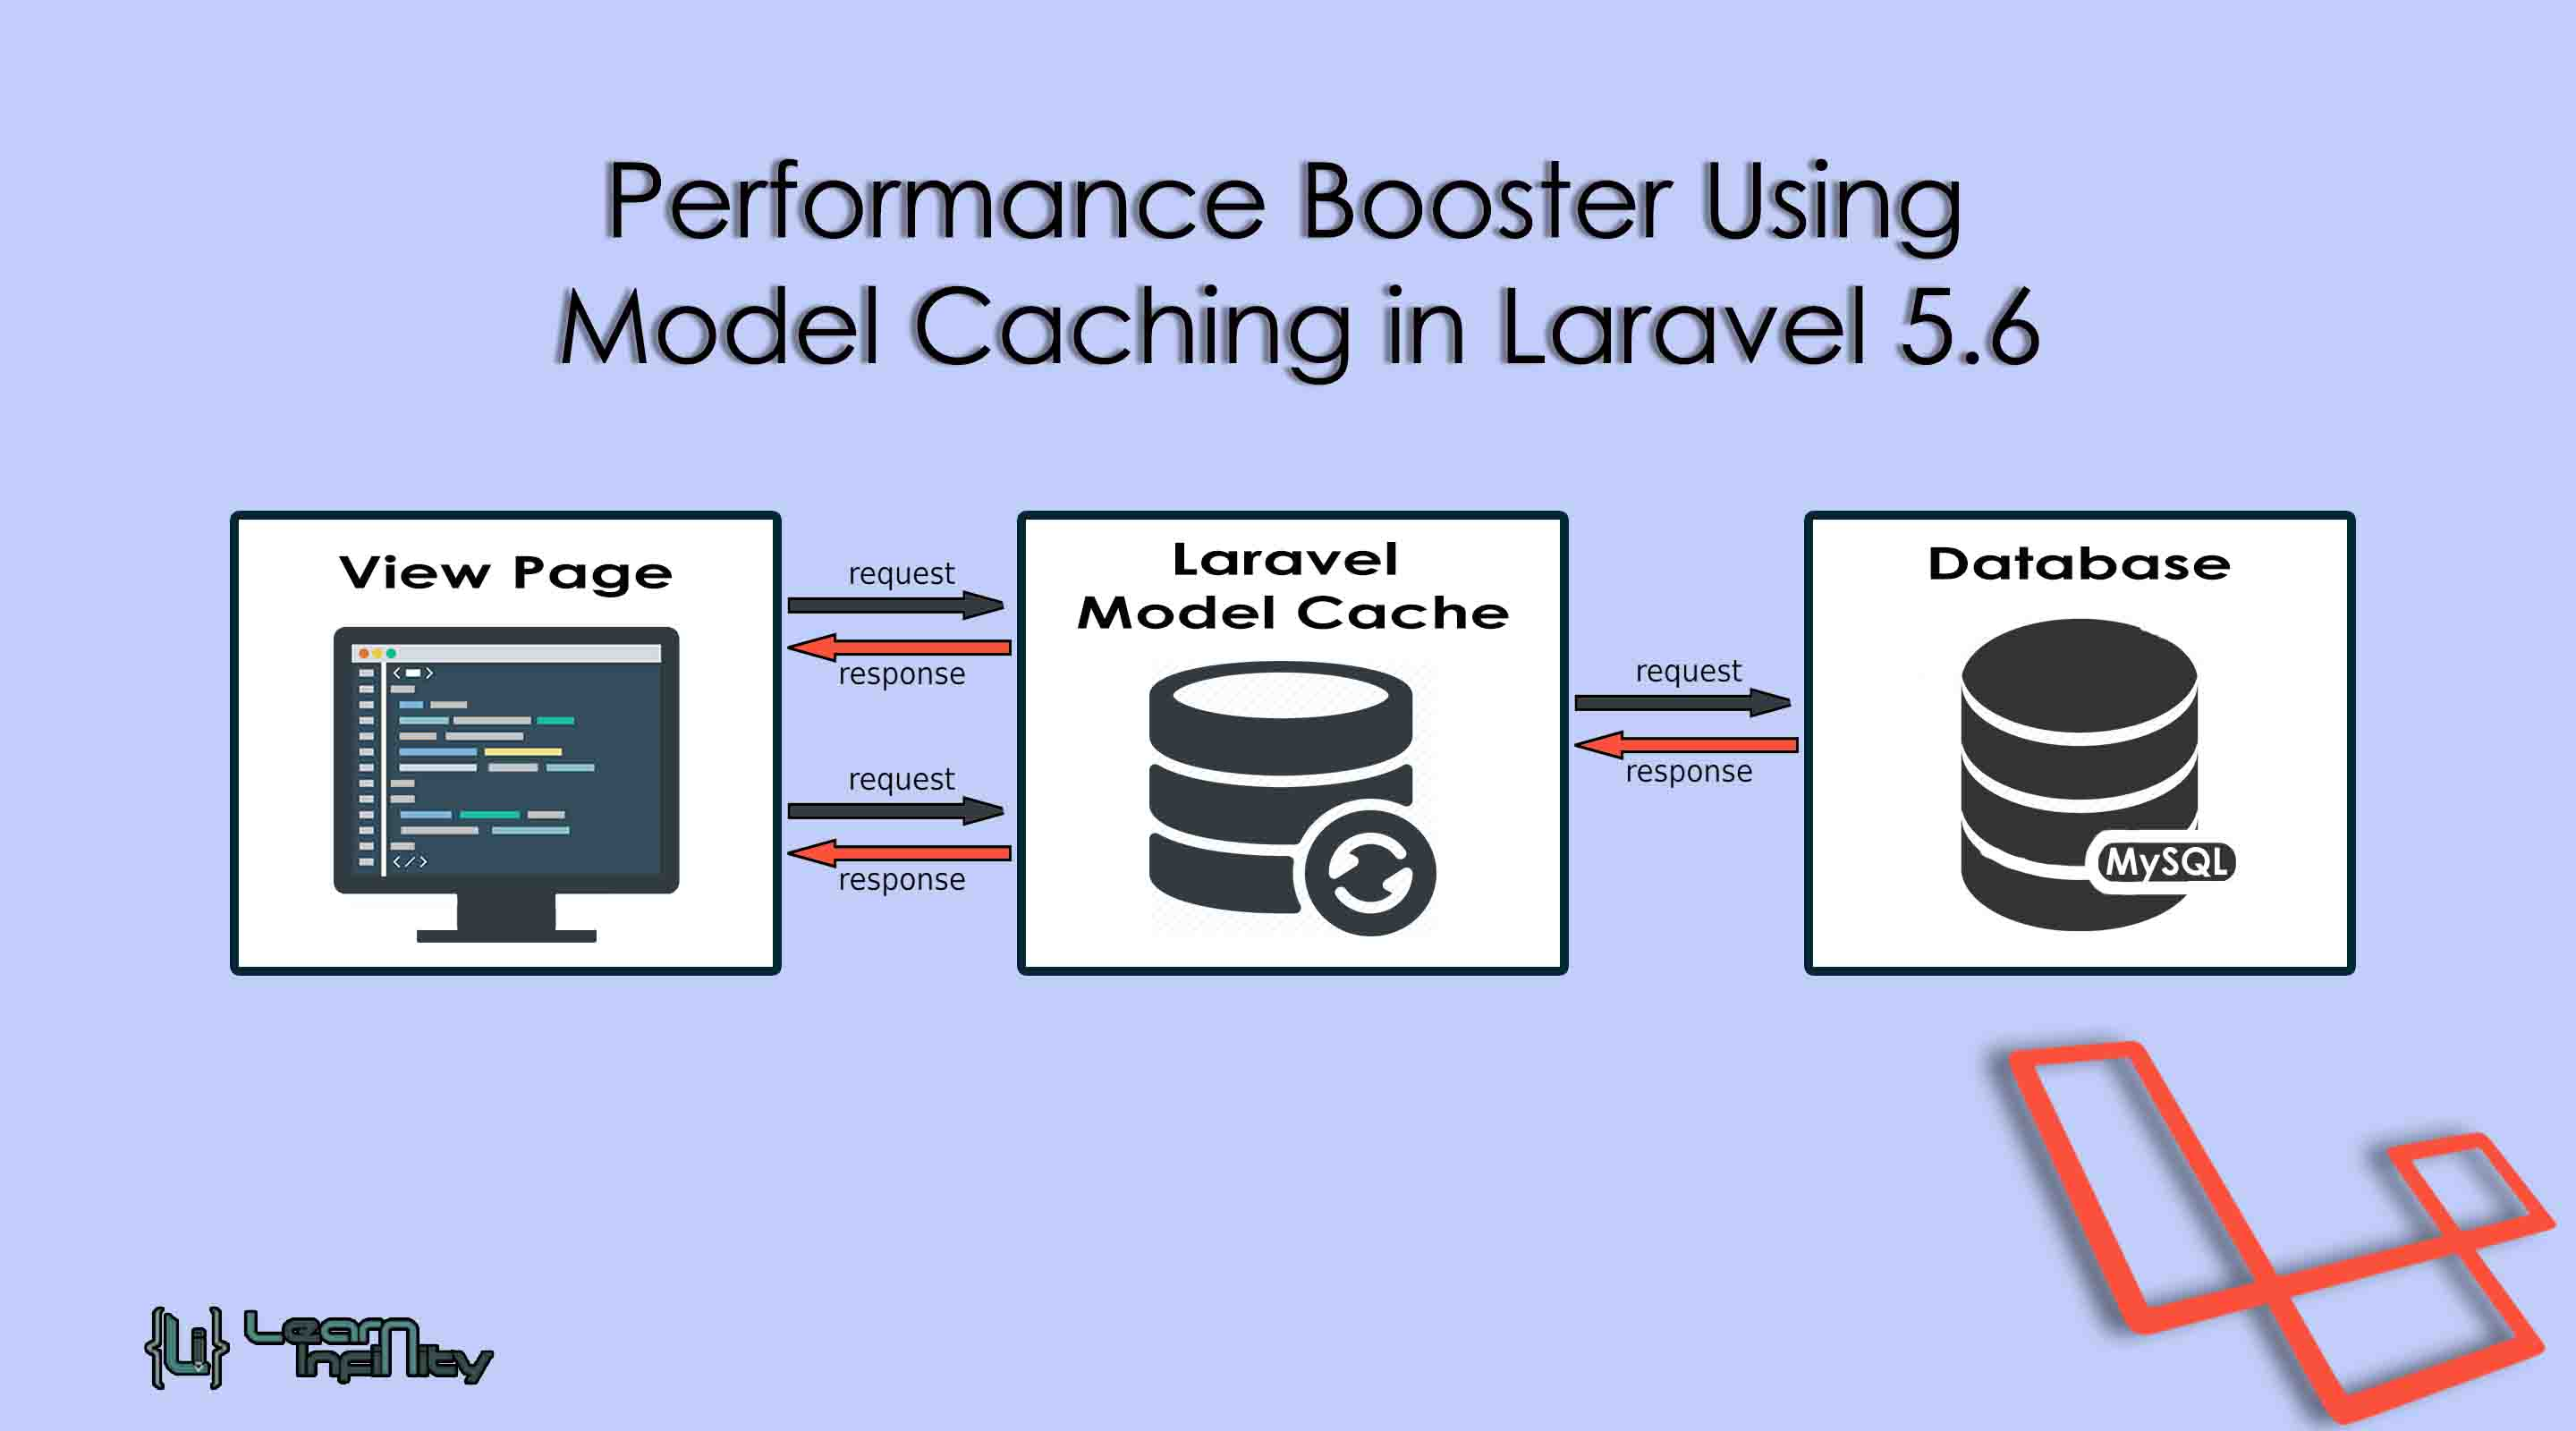 Performance Booster Using Model Caching in Laravel 5.6